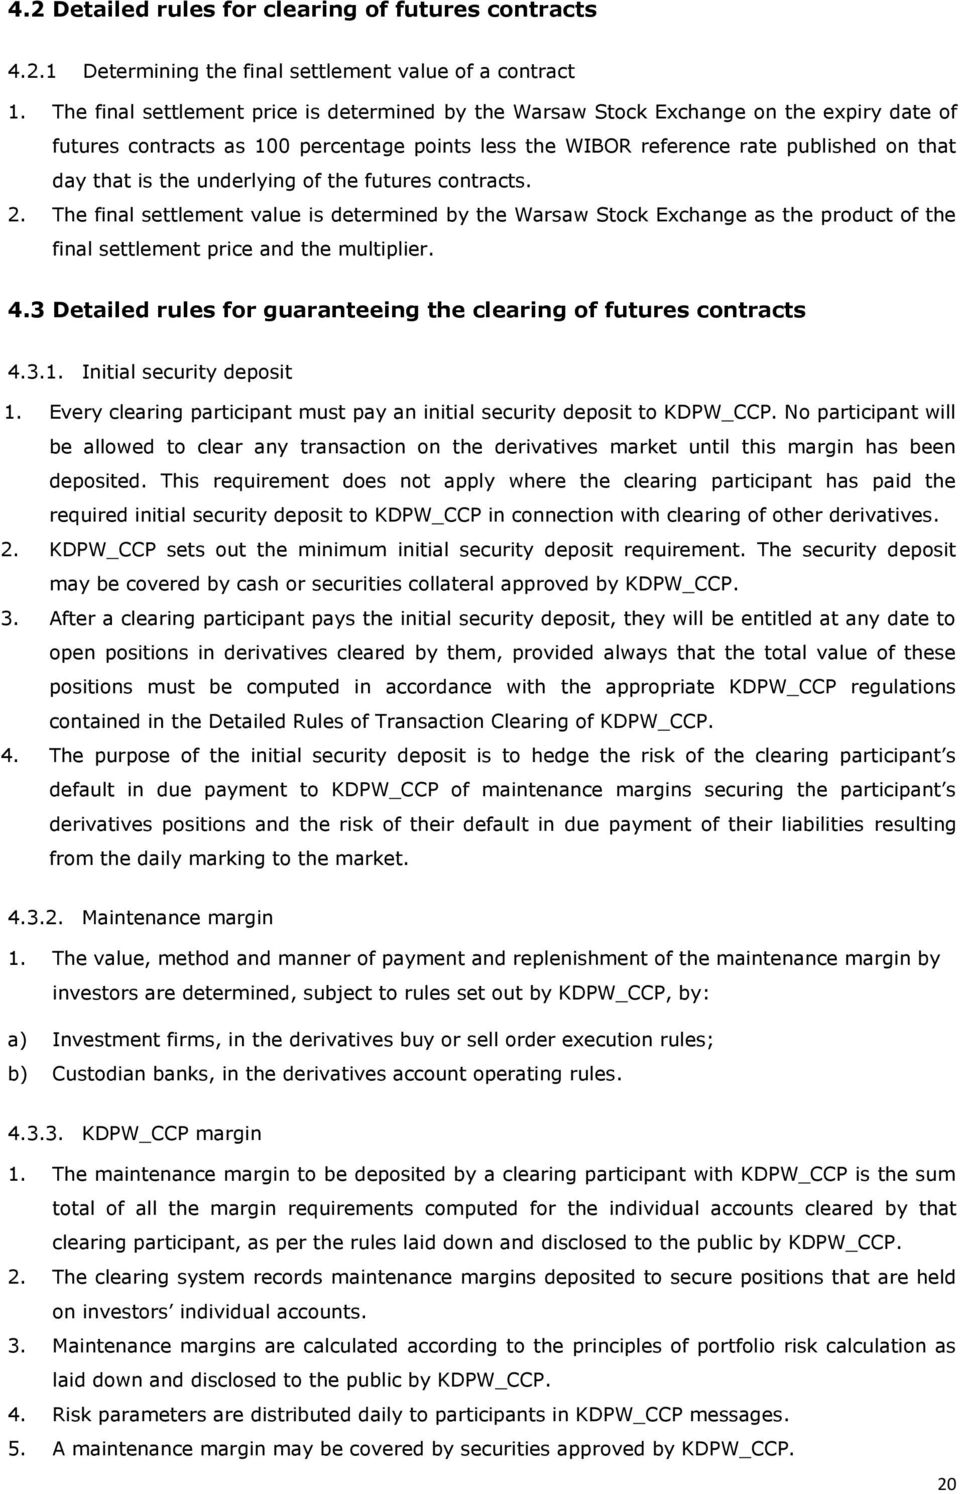 underlying of the futures contracts. 2. The final settlement value is determined by the Warsaw Stock Exchange as the product of the final settlement price and the multiplier. 4.